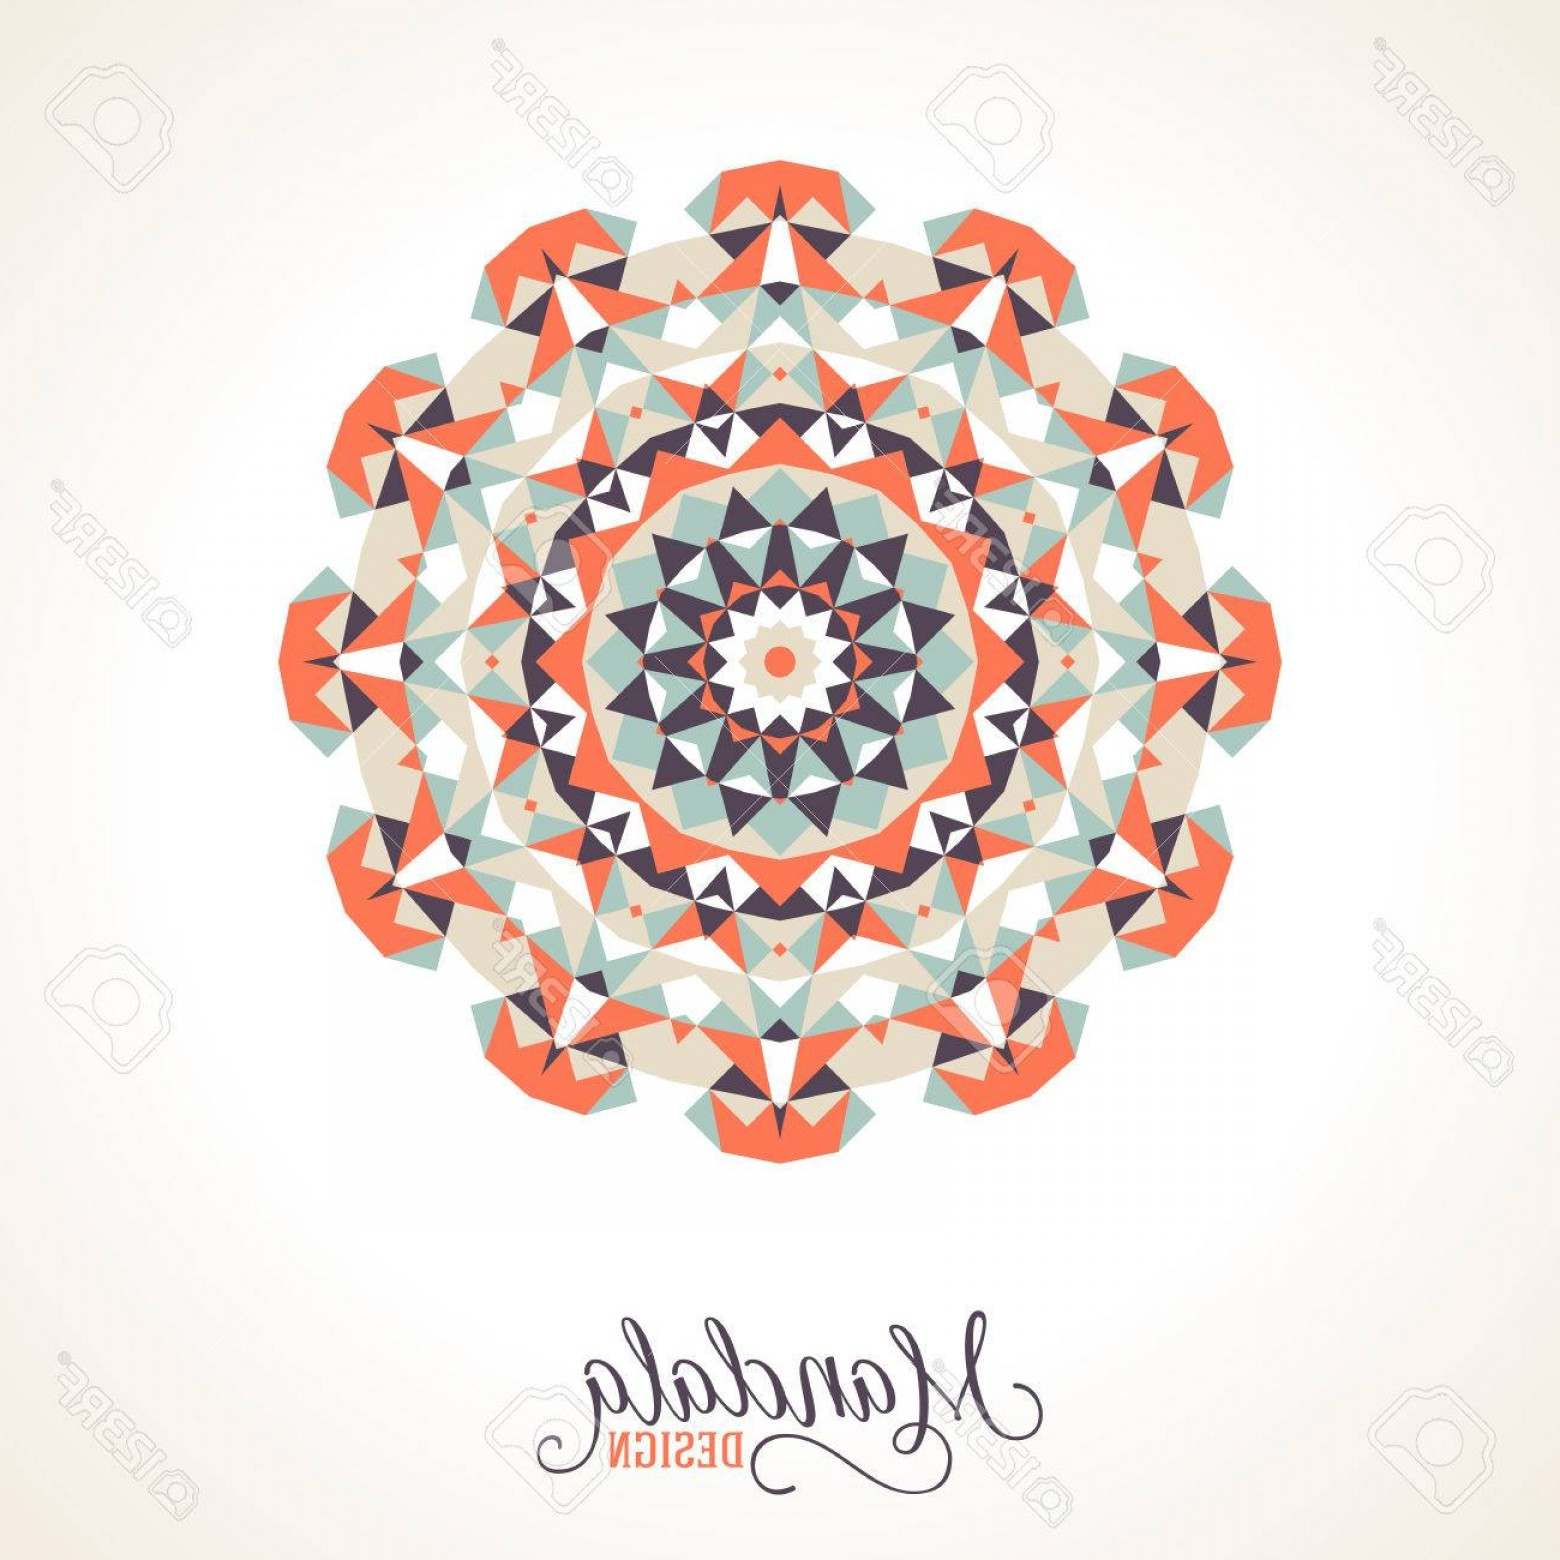 Bohemian Flowers Vector: Photostock Vector Vector Ethnic Colorful Bohemian Round Ornament In Bright Colors Big Abstract Flower Or Mandala With